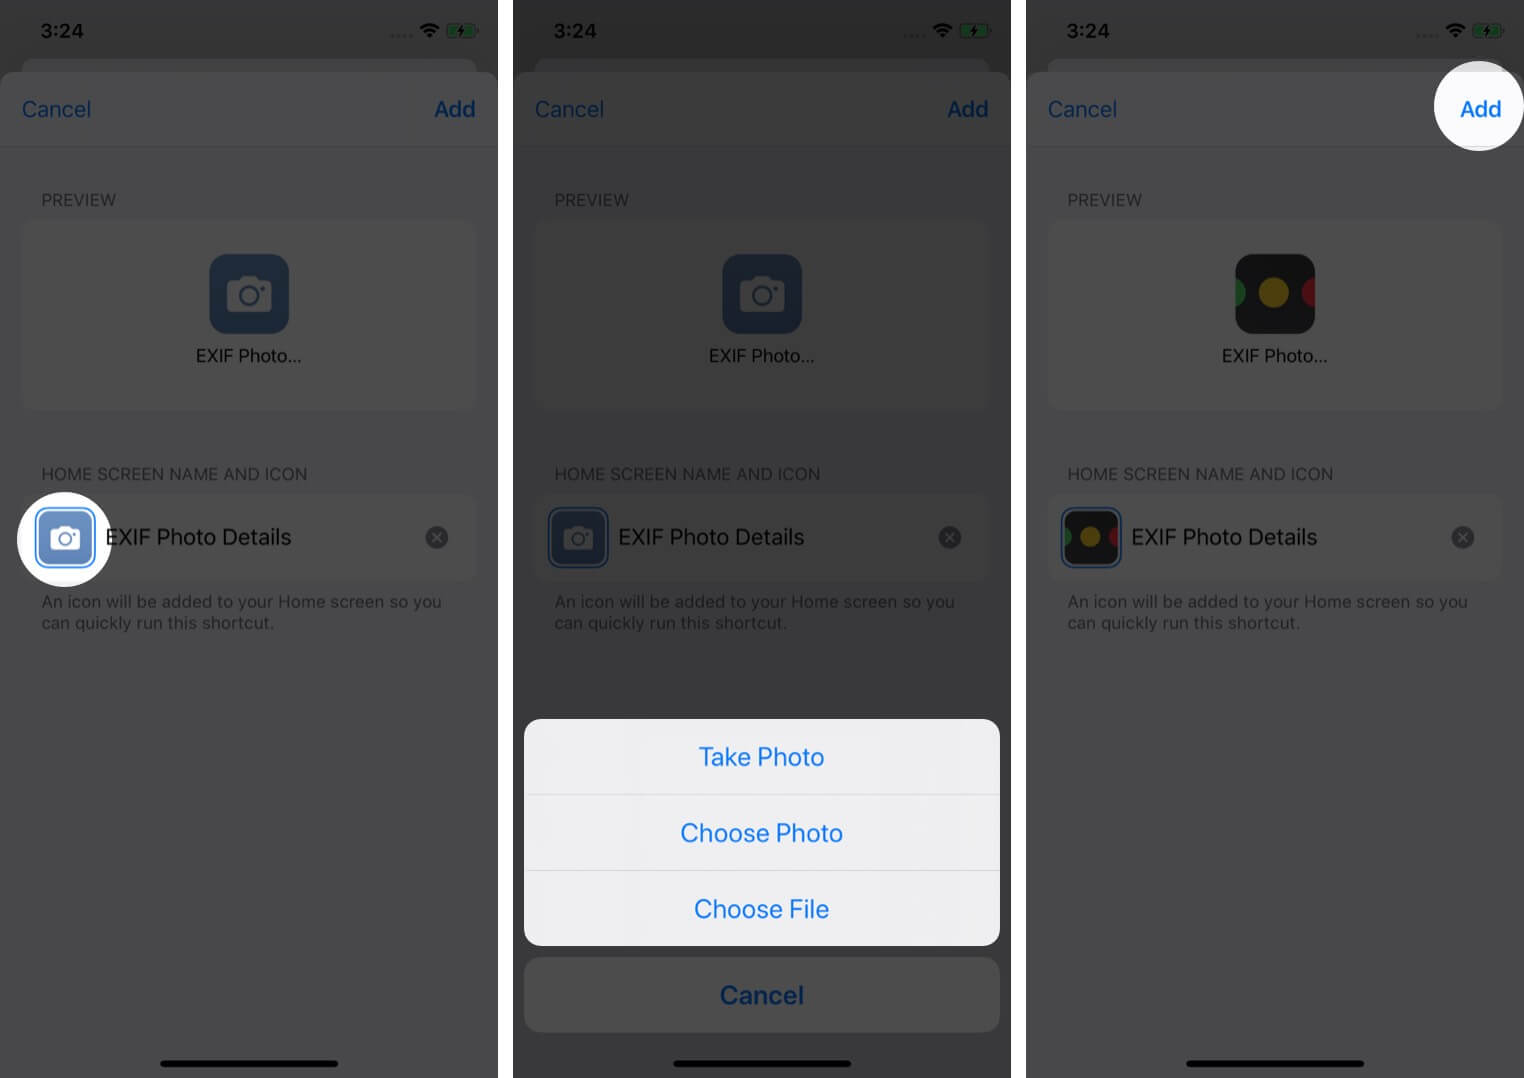 tap shortcut icon select preferred option and tap on add to change siri shortcut icon